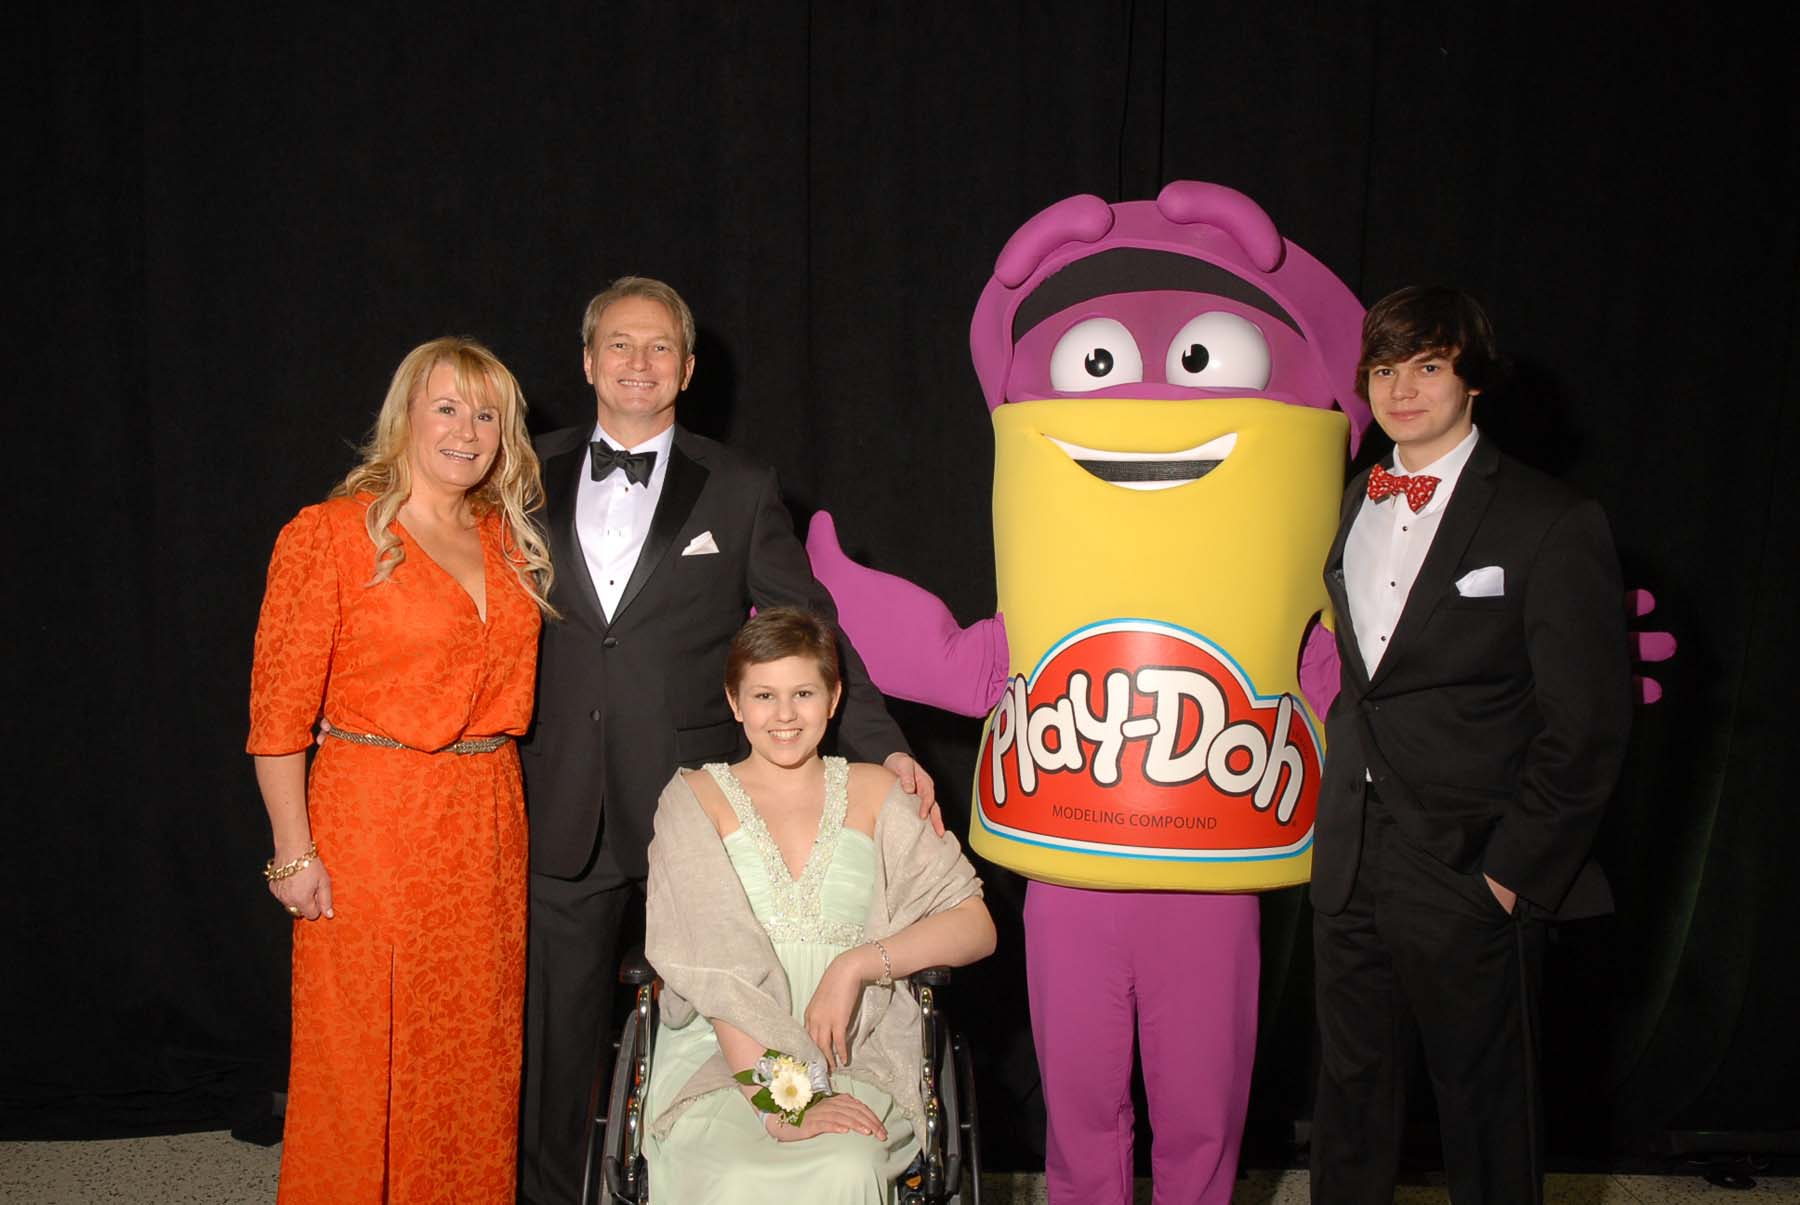 Featured patient Emma Katzen and her family with a PLAY-DOH character. Photo by Al Weems.